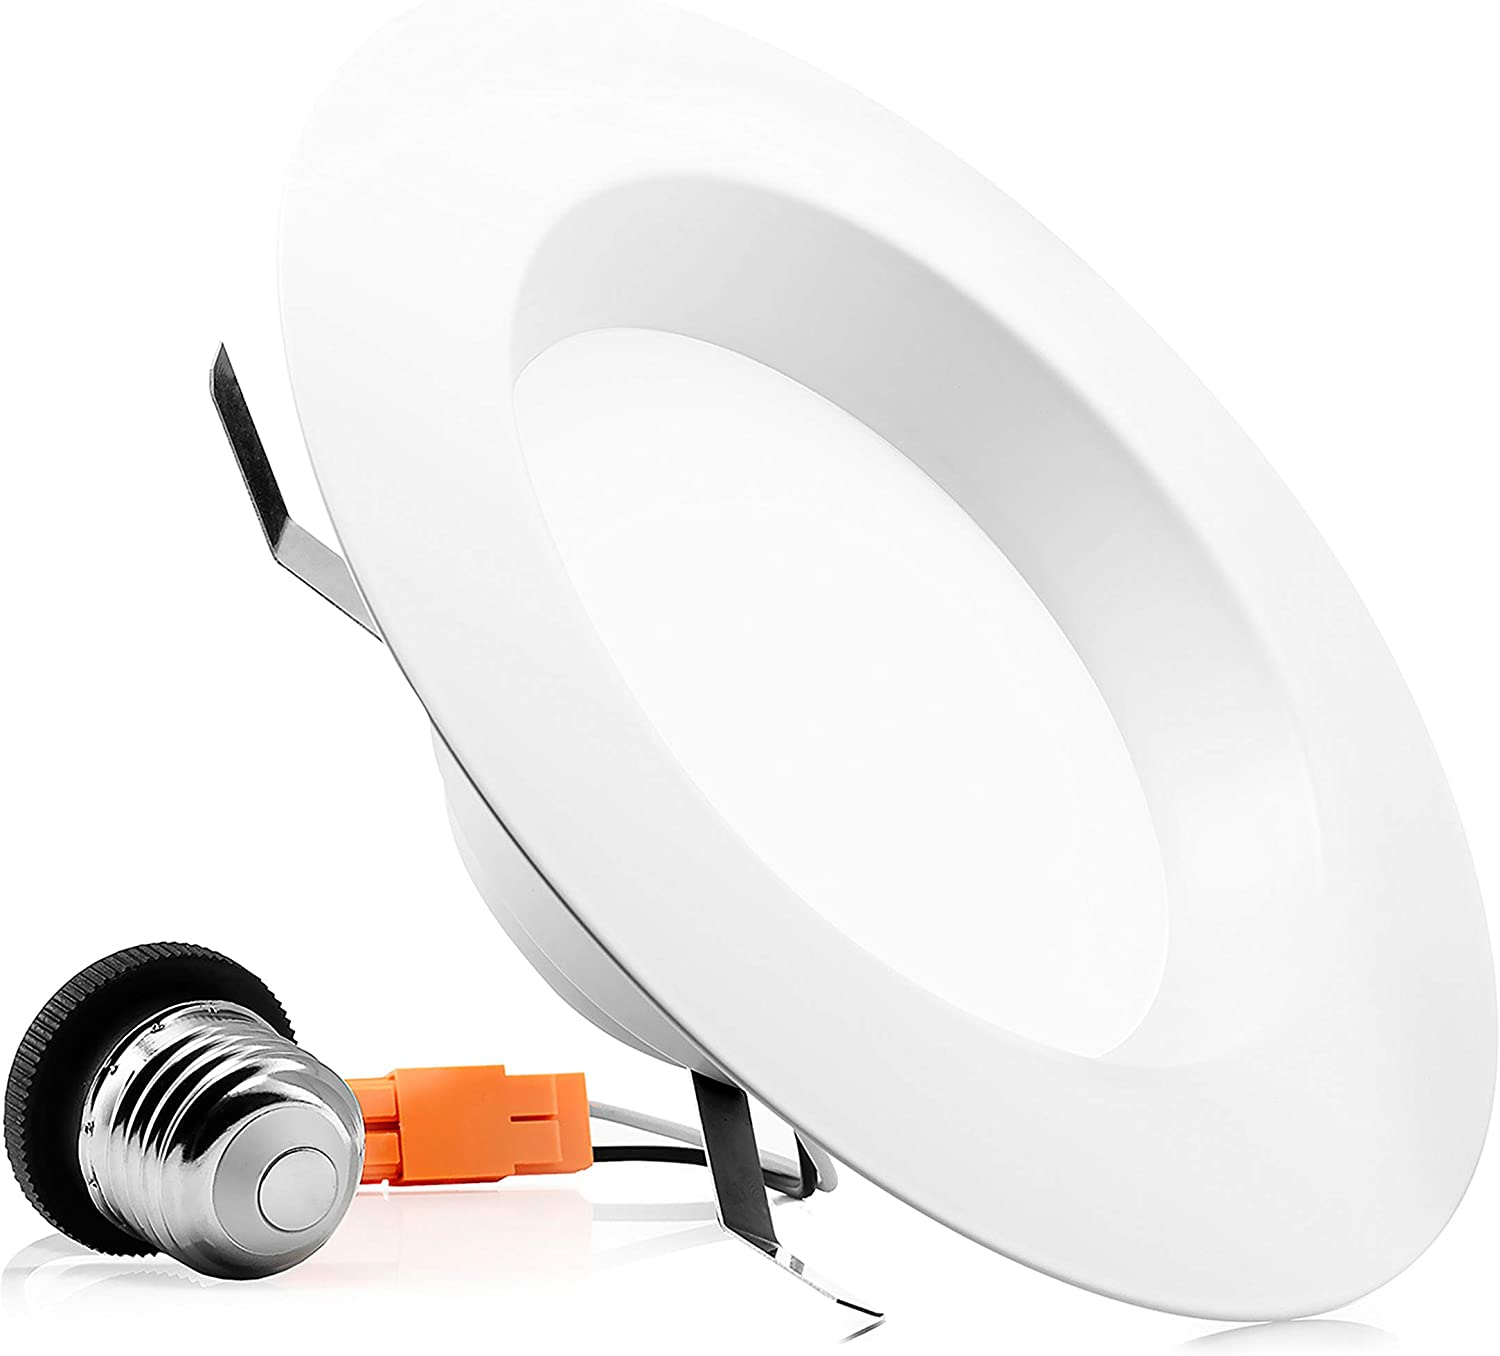 PARMIDA (1 Pack) 5/6 inch Dimmable LED Recessed Retrofit Downlight, 15W (120W Replacement), Easy Installation, 1100lm, Energy Star & ETL-Listed, LED Ceiling Down Light, LED Trim Can Lights, 3000K